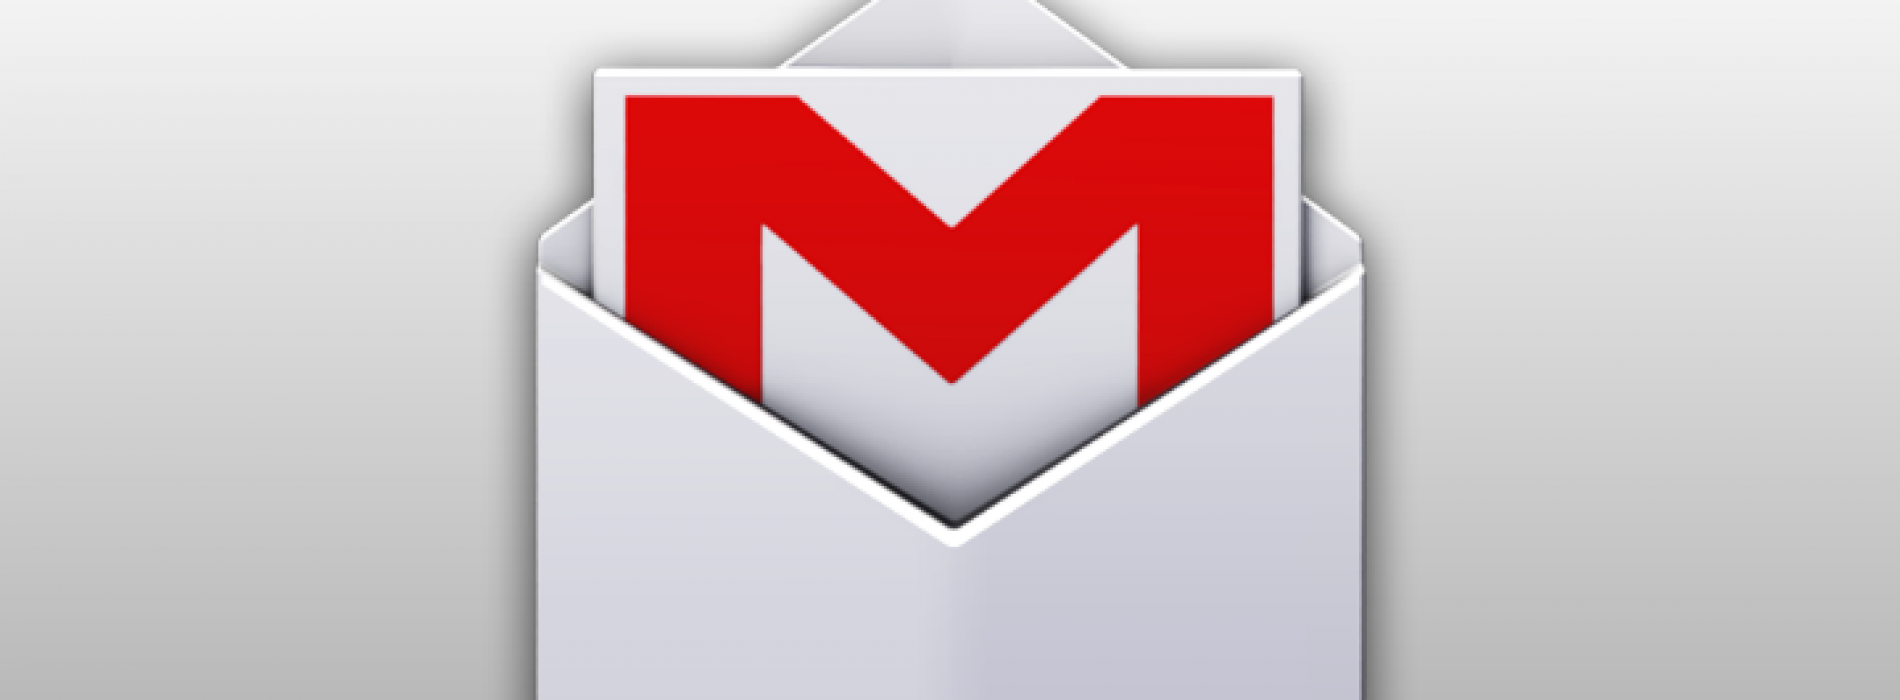 New Gmail app for Android lets users do much more in notifications